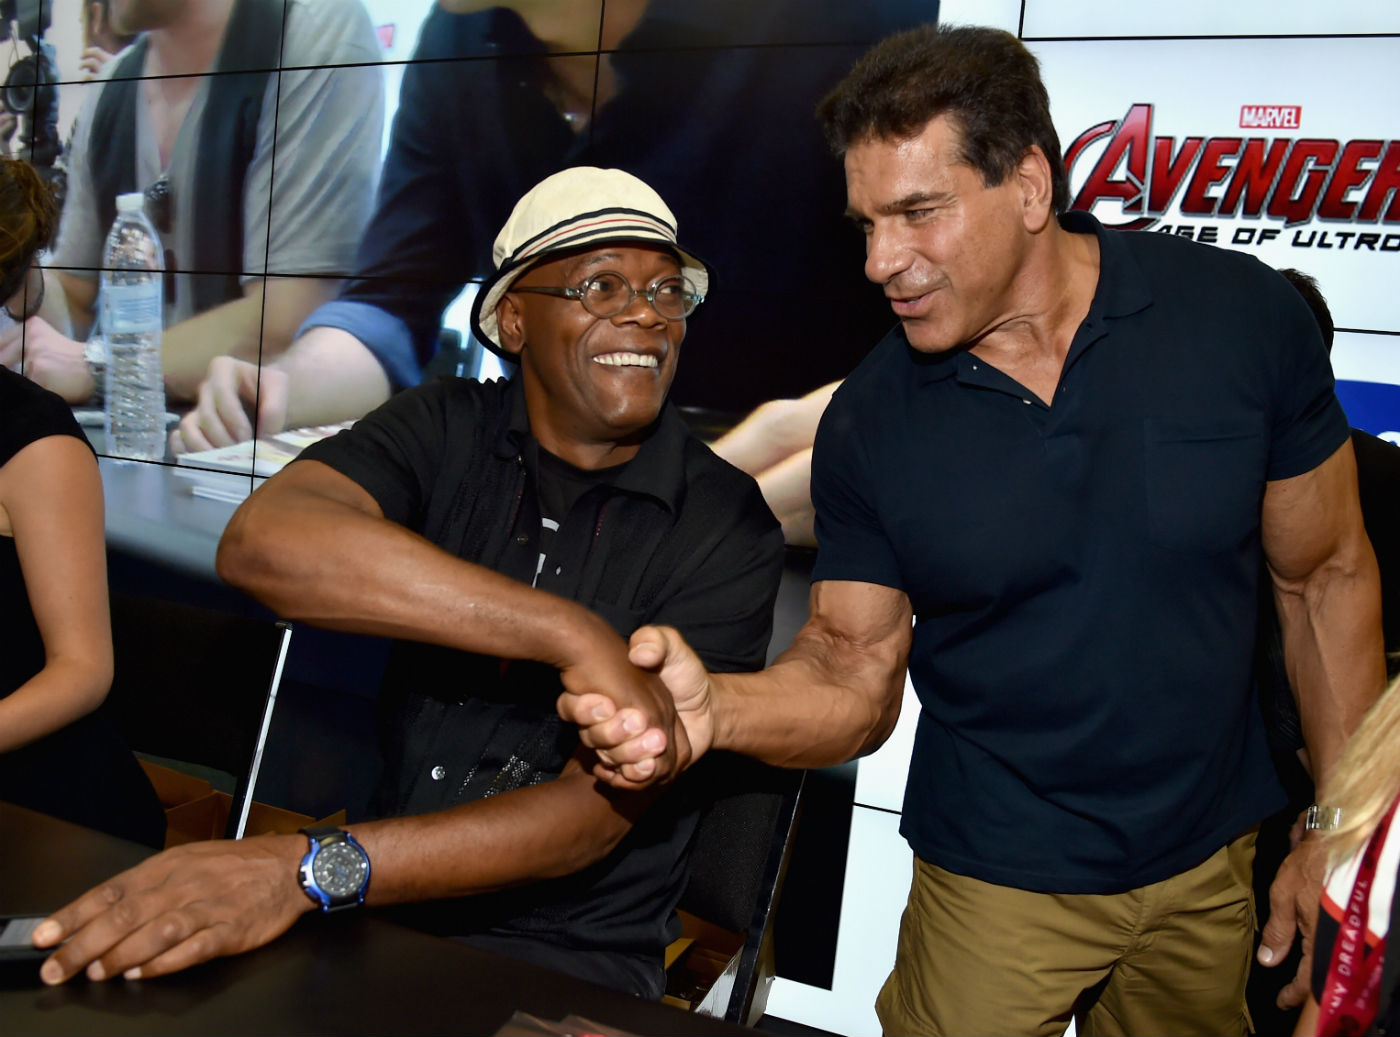 SDCC-2014-Avengers-Signing-Samuel-L.-Jackson-and-Lou-Ferrigno